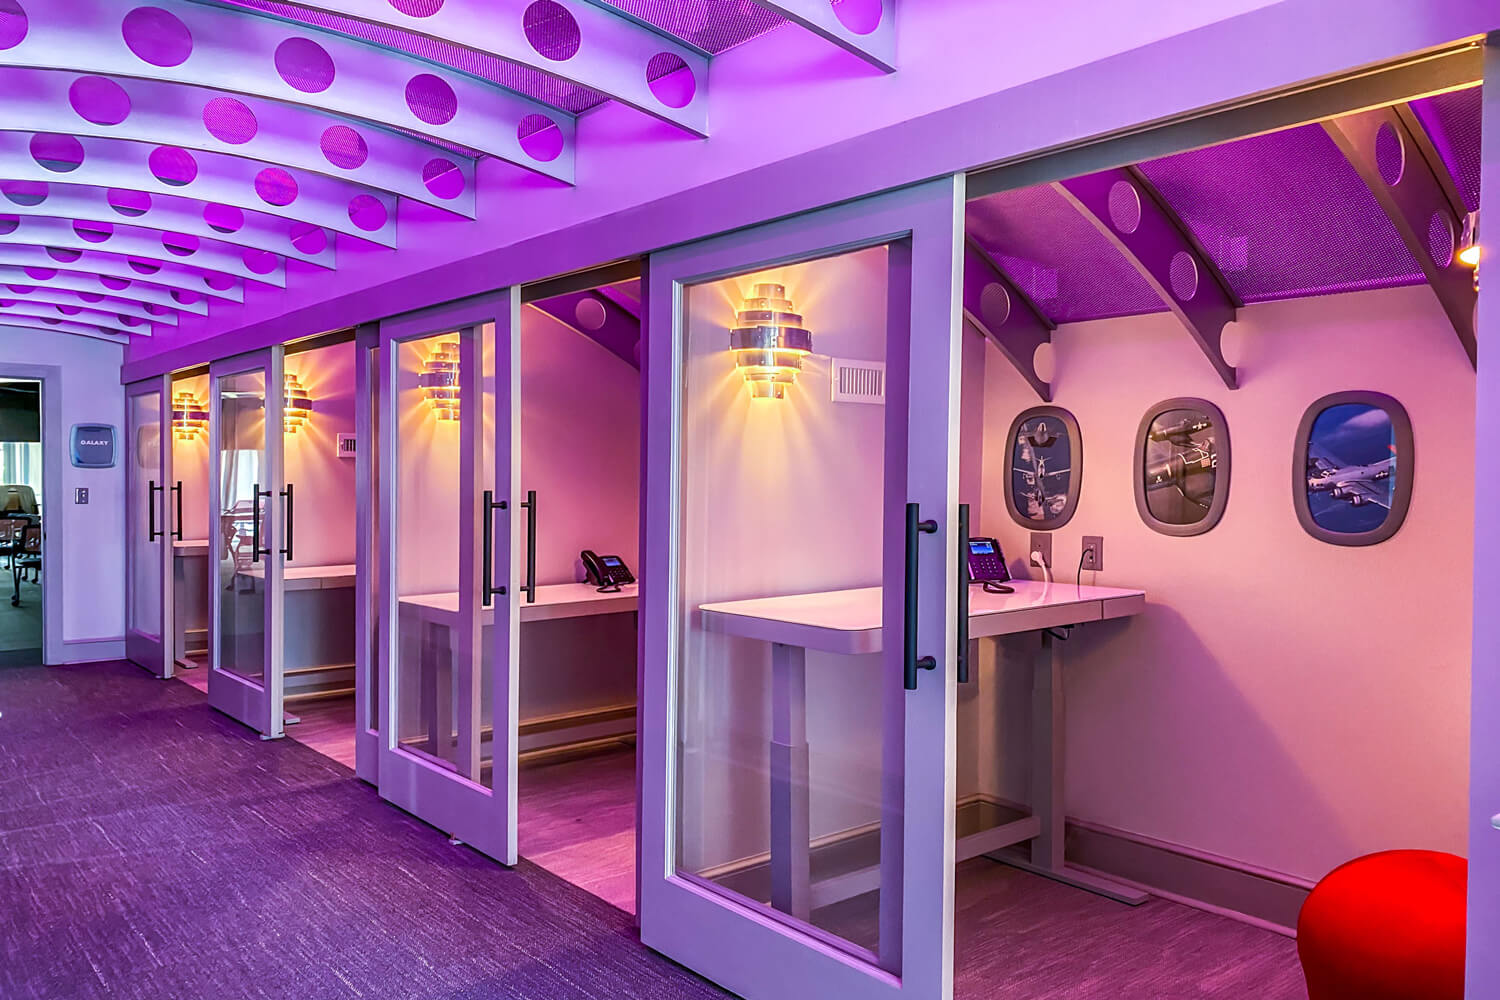 MGMWerx Collaboration Space - Corridor and Isolation Pods - Designed by Foshee Architecture